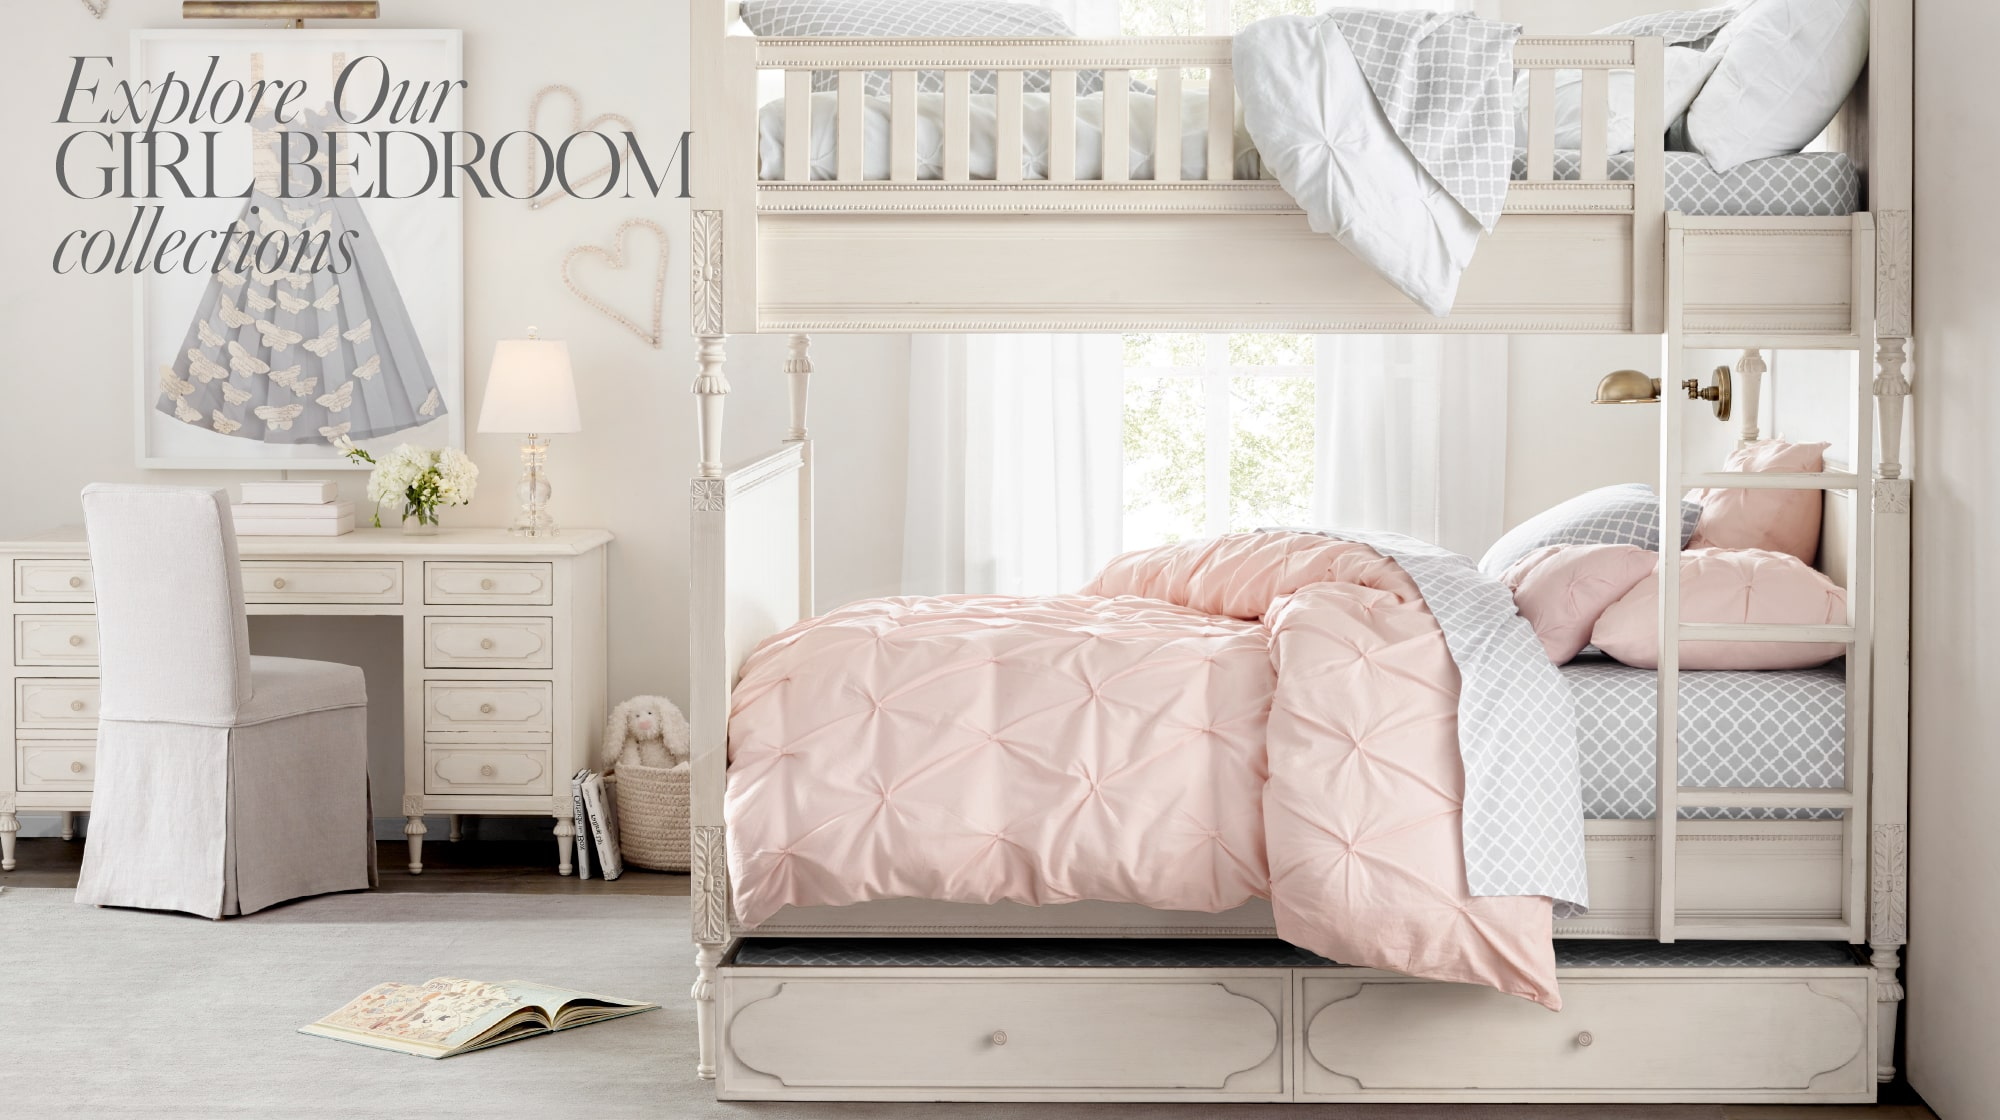 10c51ec3023 ... Nursery Collections · RH Baby and Child - Explore Our Girl Bedroom  Collections.